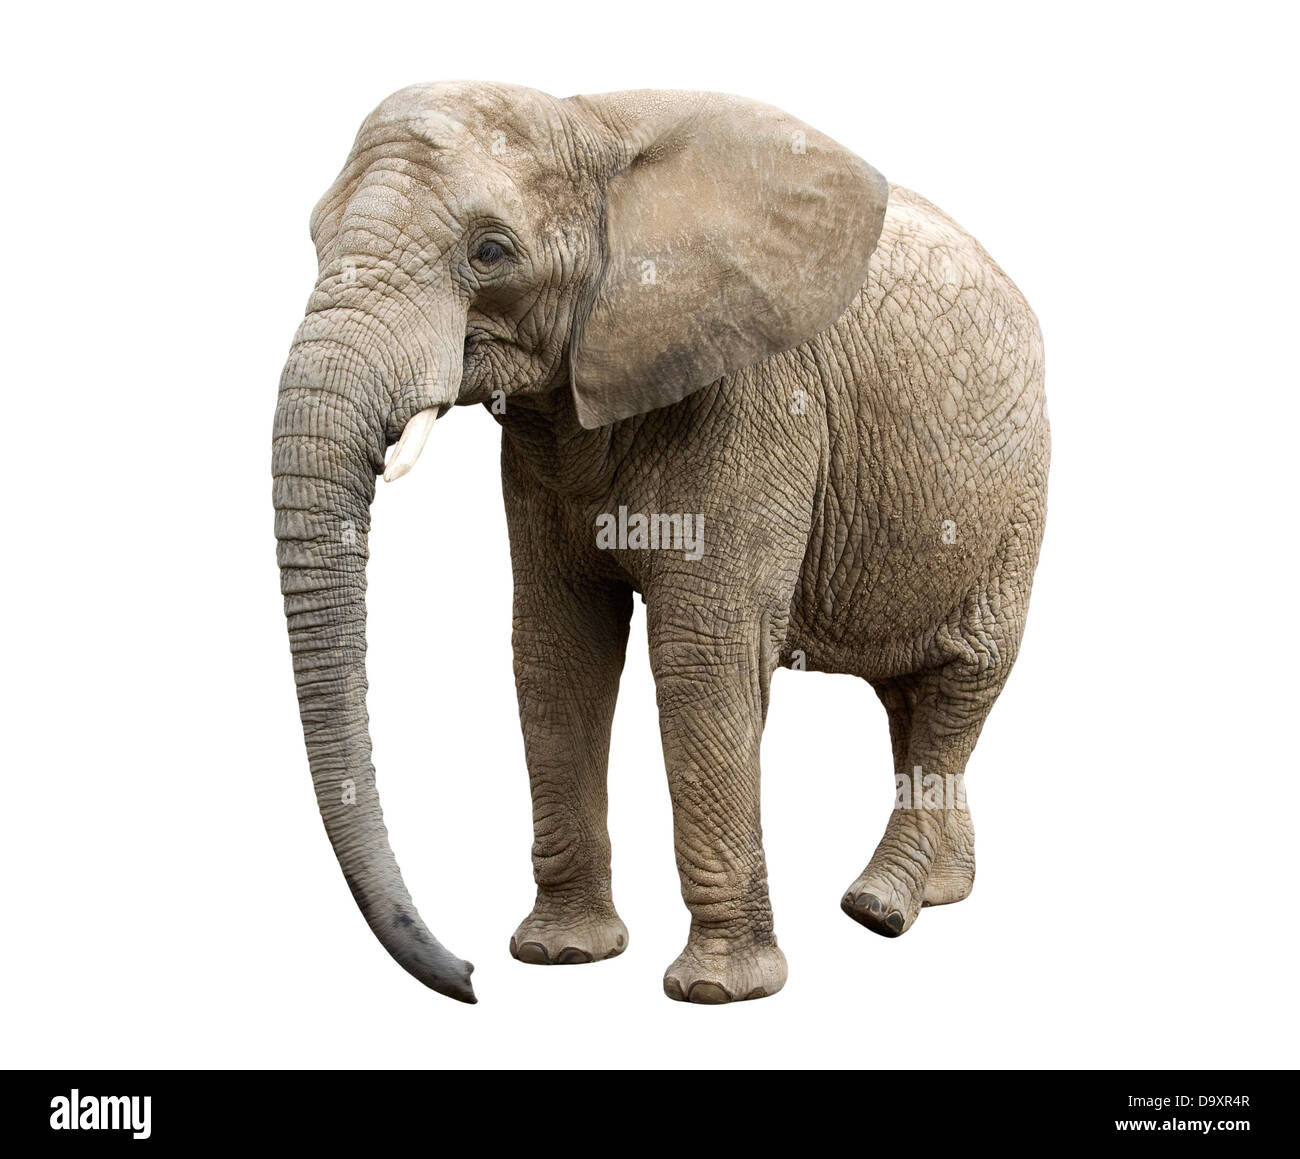 African elephant with clipping path - Stock Image